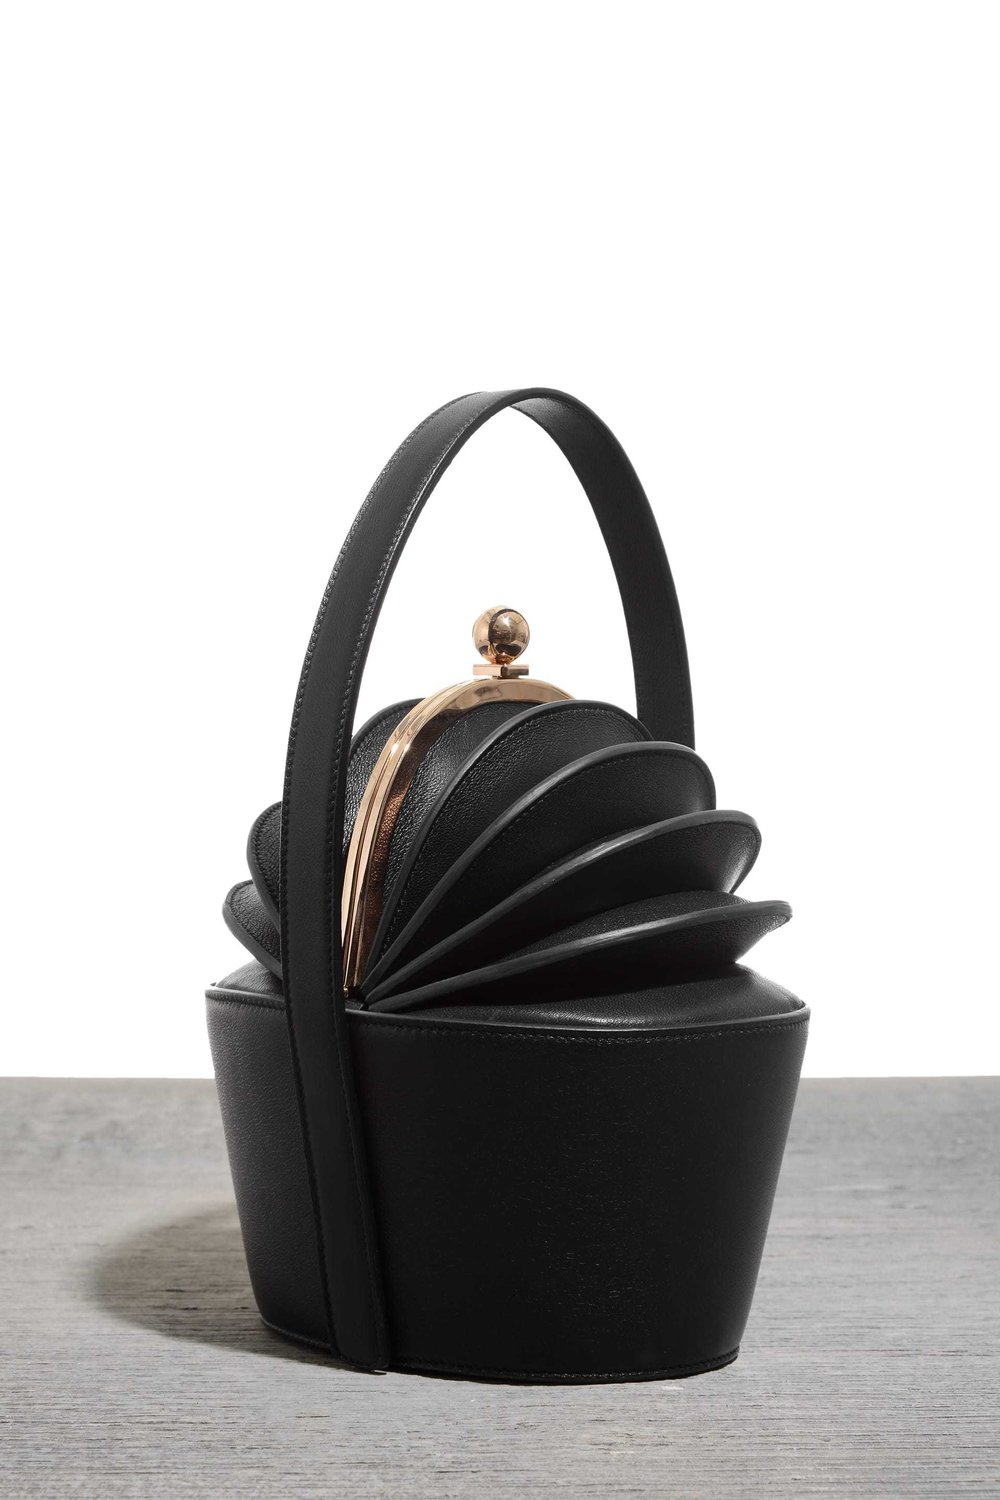 Ella bag, $2,750, at Bergdorf Goodman and Net-a-Porter